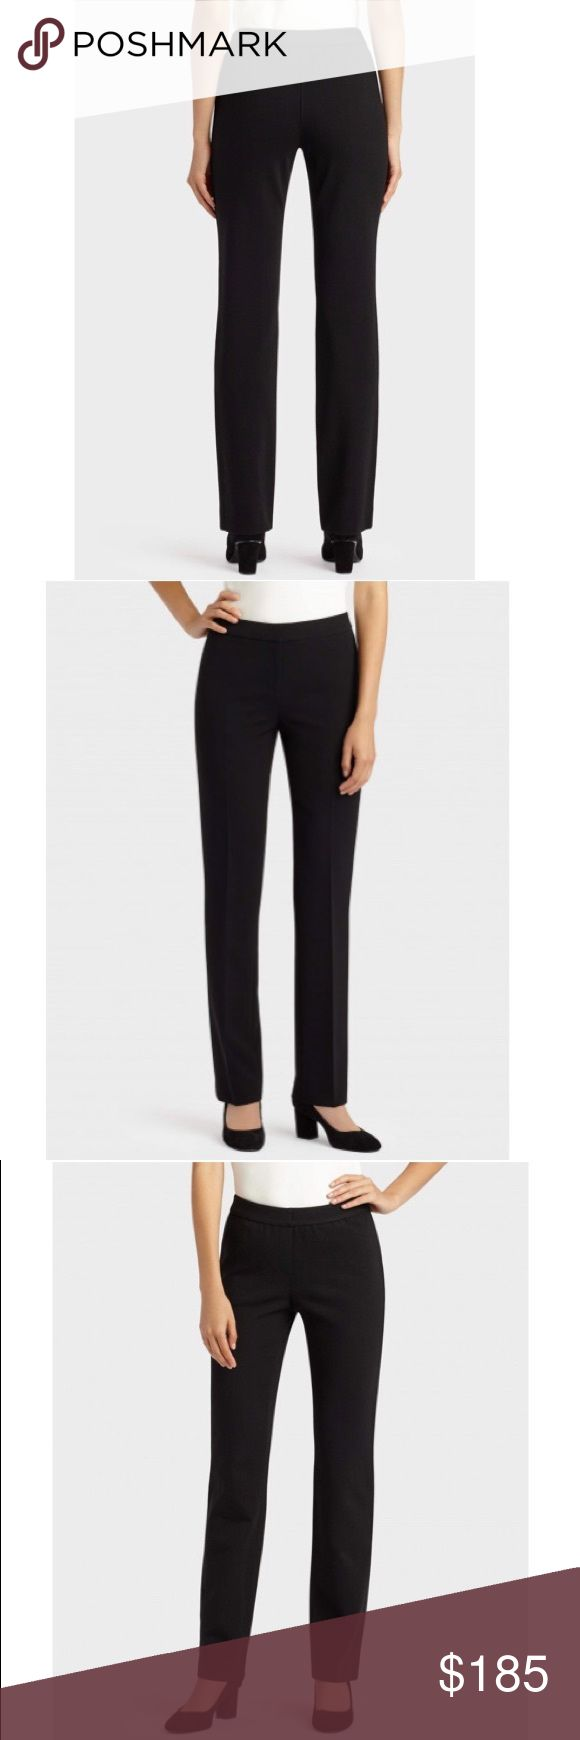 """🎀NWOT ITALIAN PUNTO MILANO KENT PANT Sleek finish and fitted silhouette make this a business wardrobe must-have. Flattering the body and holding any shape with incredible stretch, this Italian-sourced fabric defines comfort. A true ready-to-wear finish that is completely wrinkle resistant, Punto Milano is quintessential for head-to-toe style.  Straight fit 33"""" inseam; full length 9"""" rise; sits above waist 16"""" leg opening Elastic waistband; faux fly 71% Italian Viscose 24% Polyaide 5%…"""